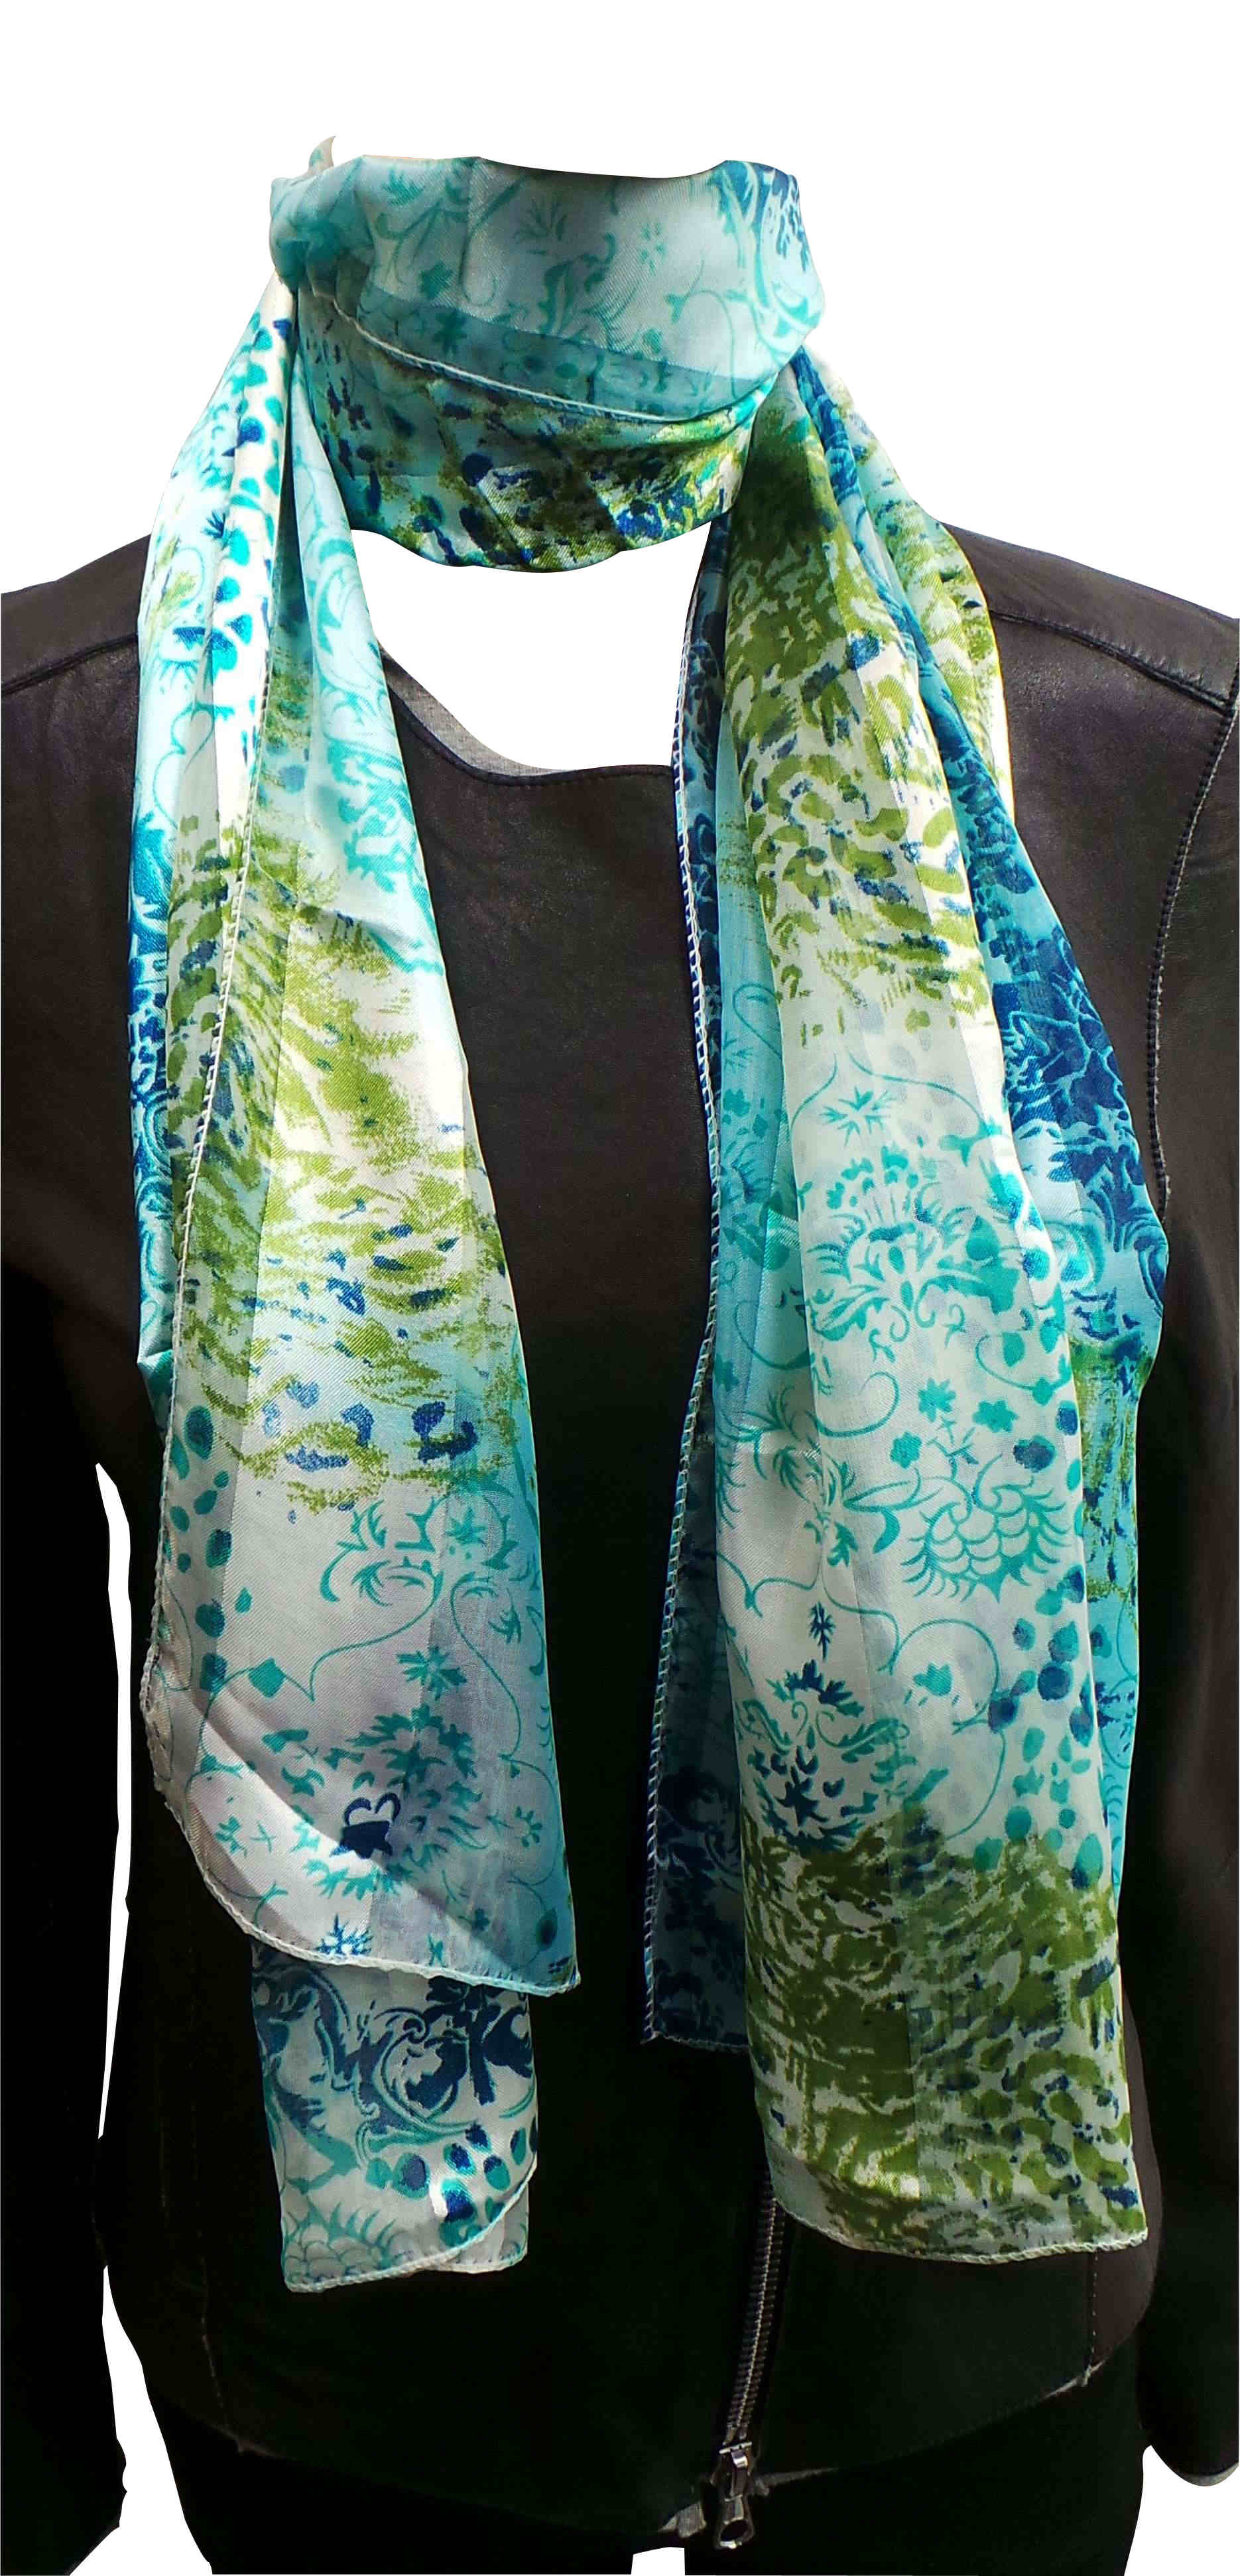 wholesale joblot of 24 blue green patterned thin